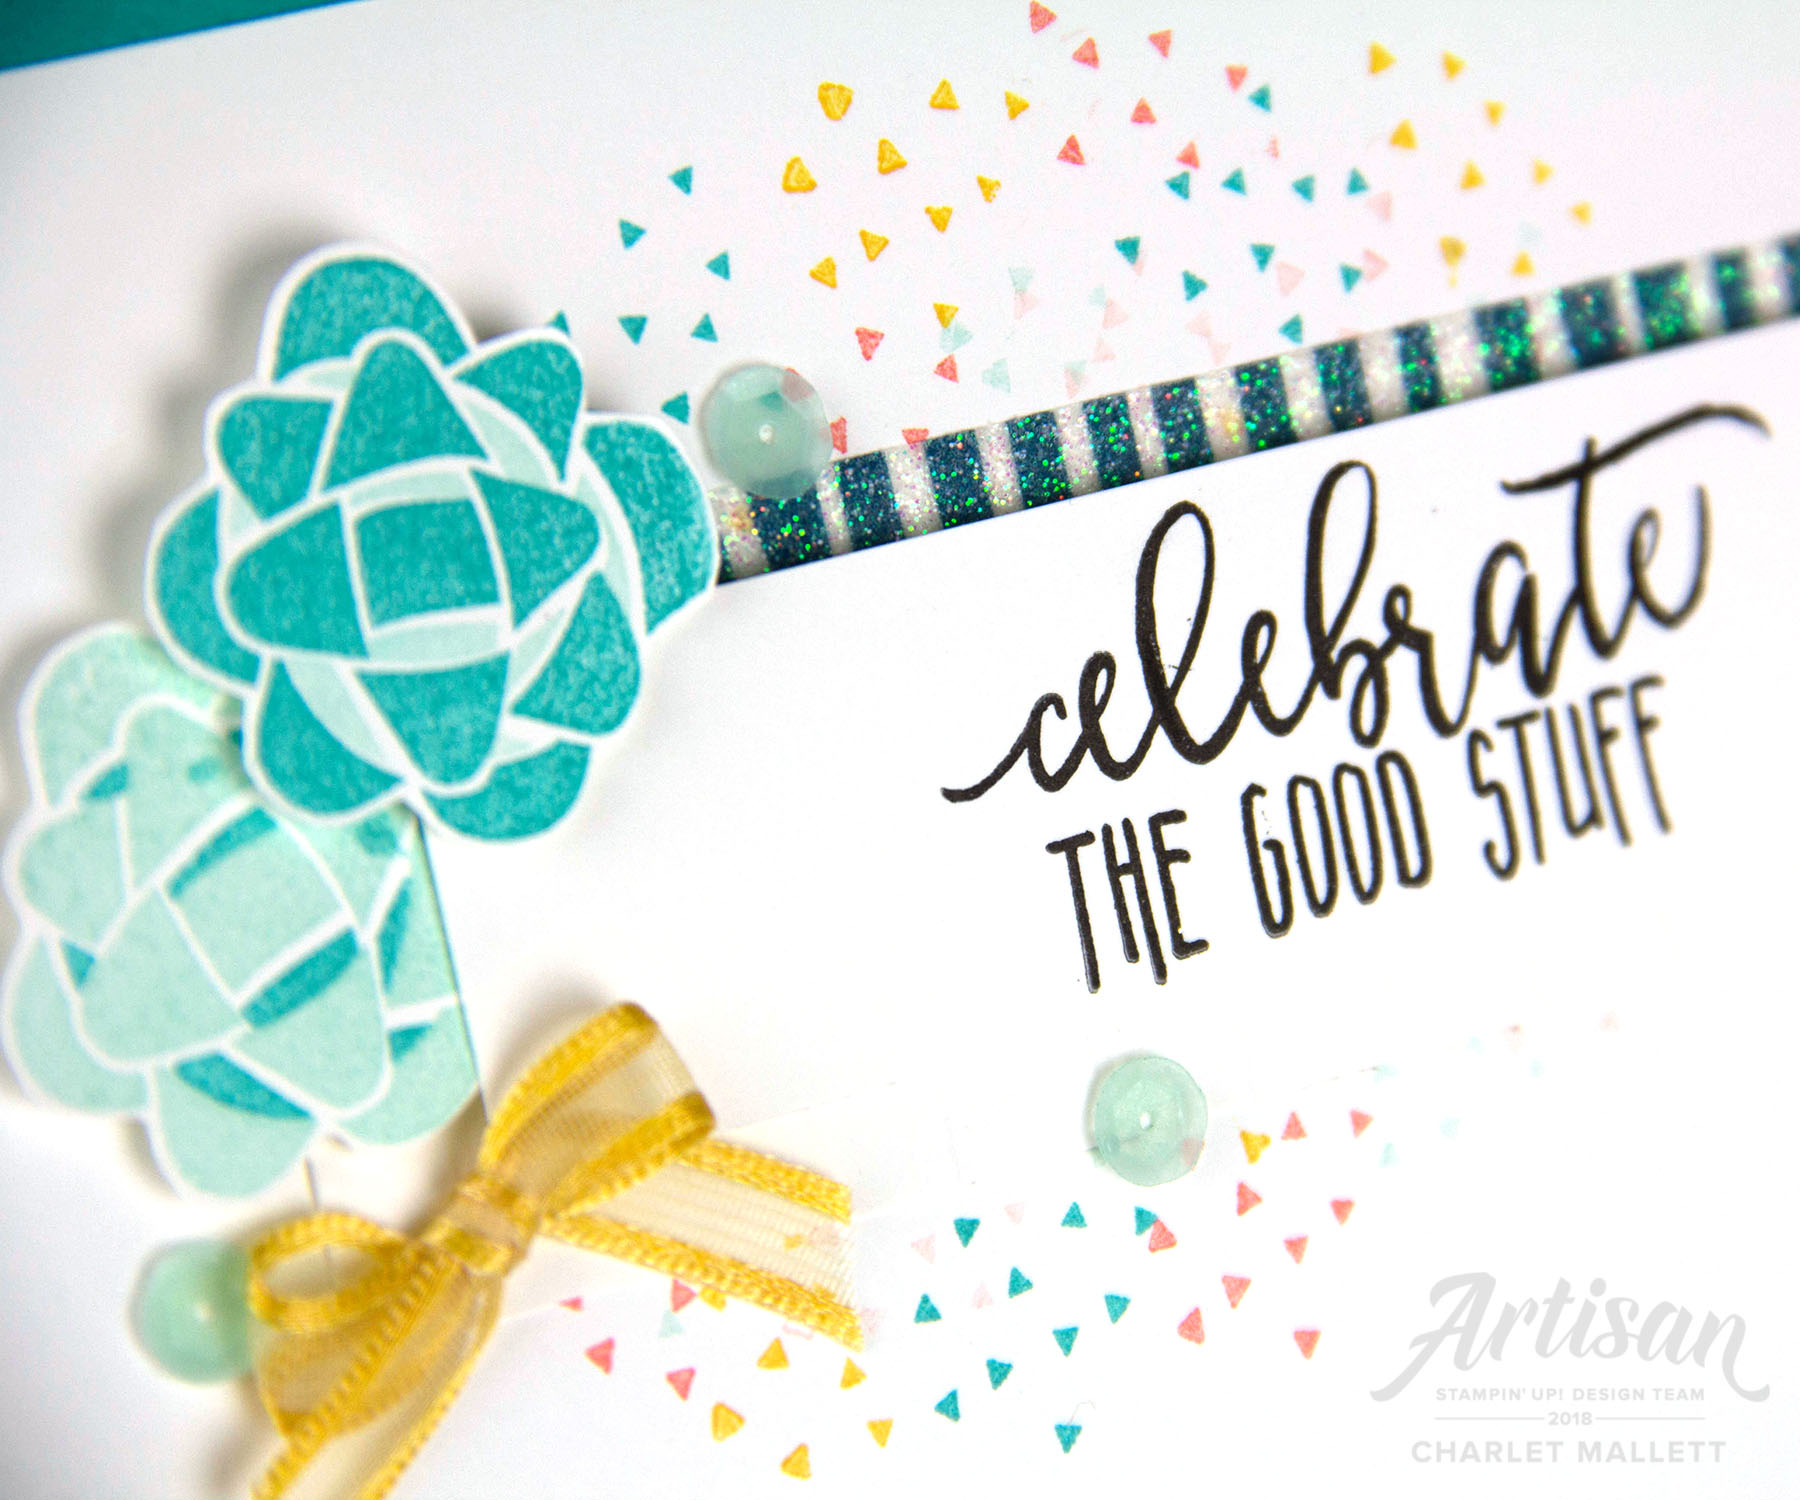 'Celebrate the Good Stuff' birthday card uses the Picture Perfect Birthday stamp set. Charlet Mallett - Stampin' Up!